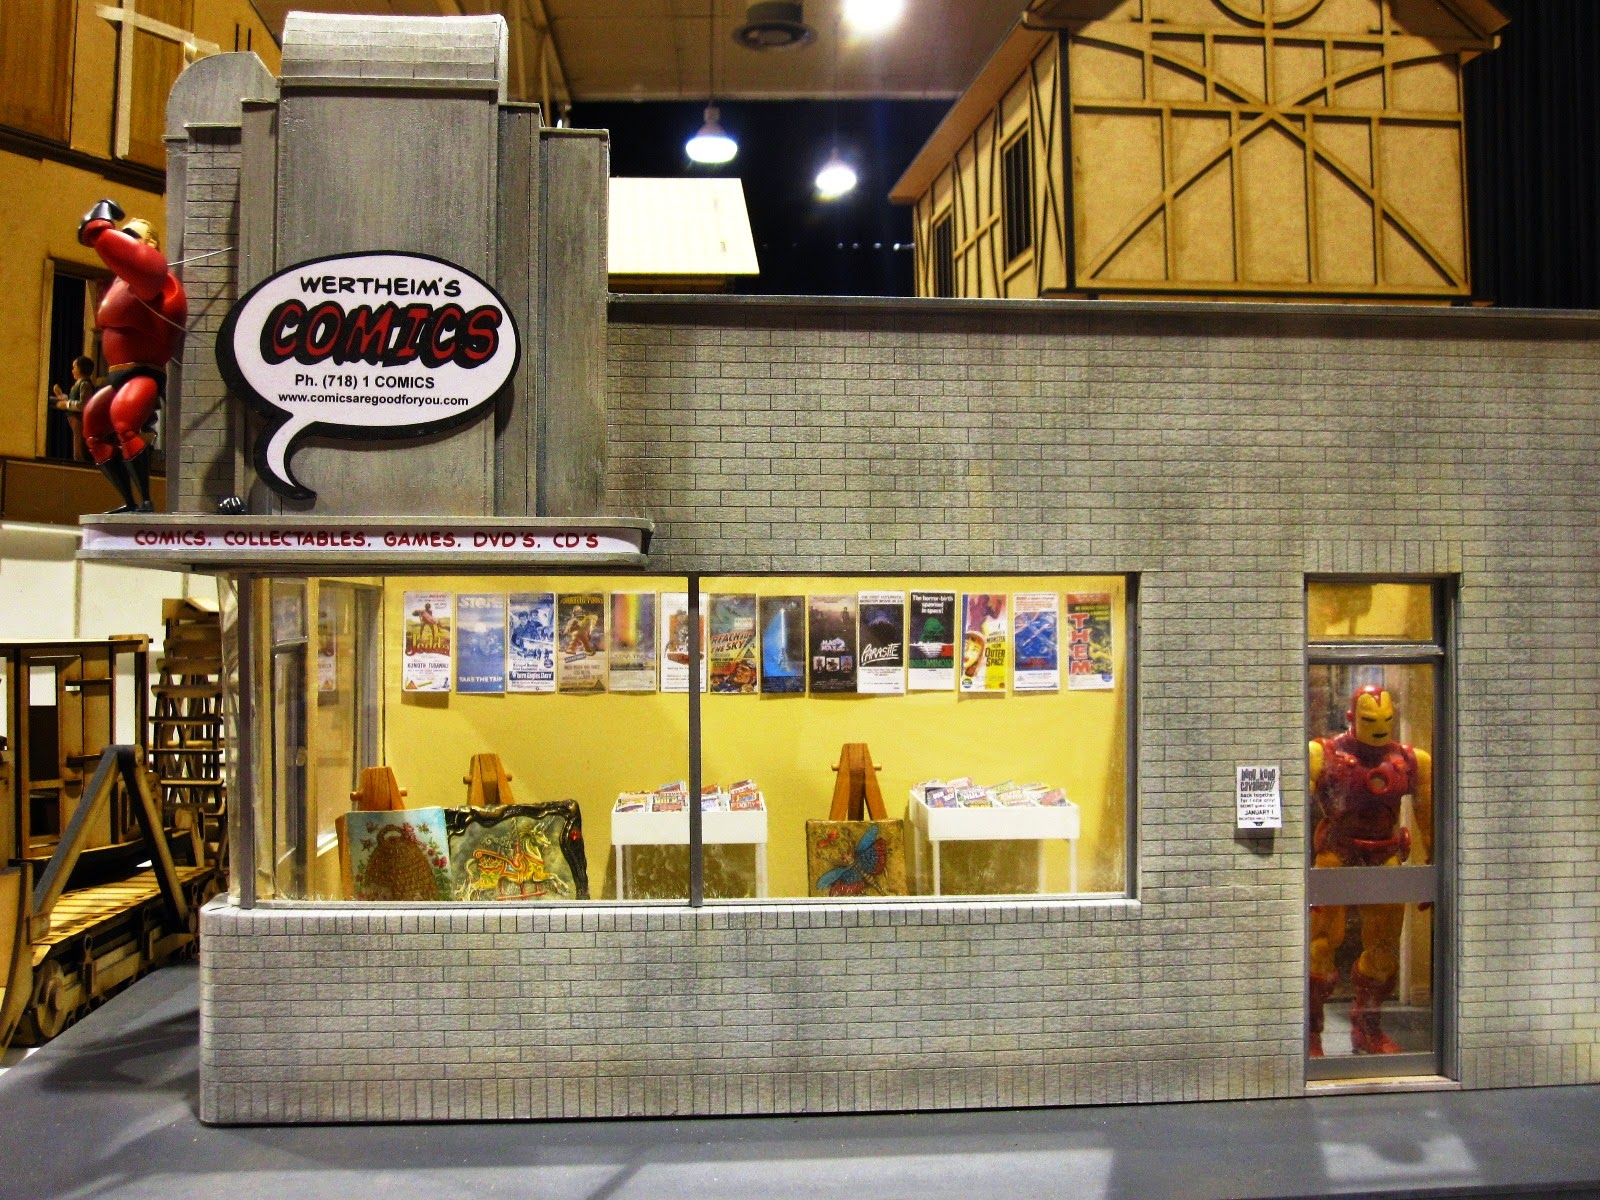 Modern miniature comic book store, side view.